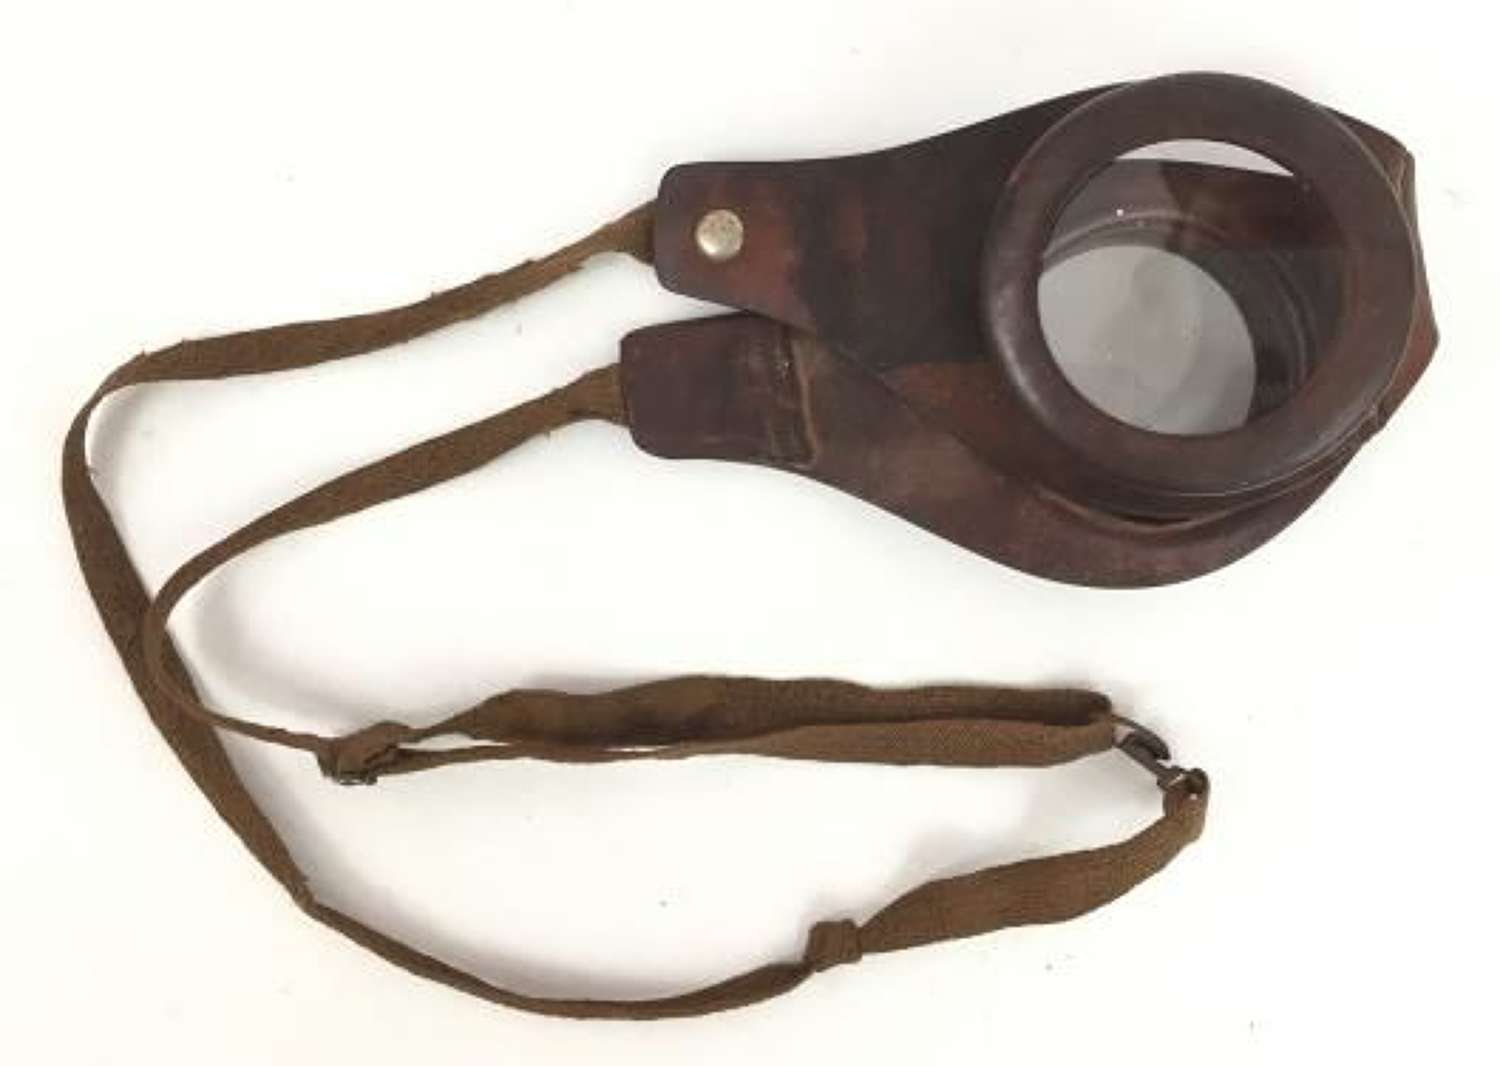 Scarce Original Royal Flying Corps MK1 Flying Goggles